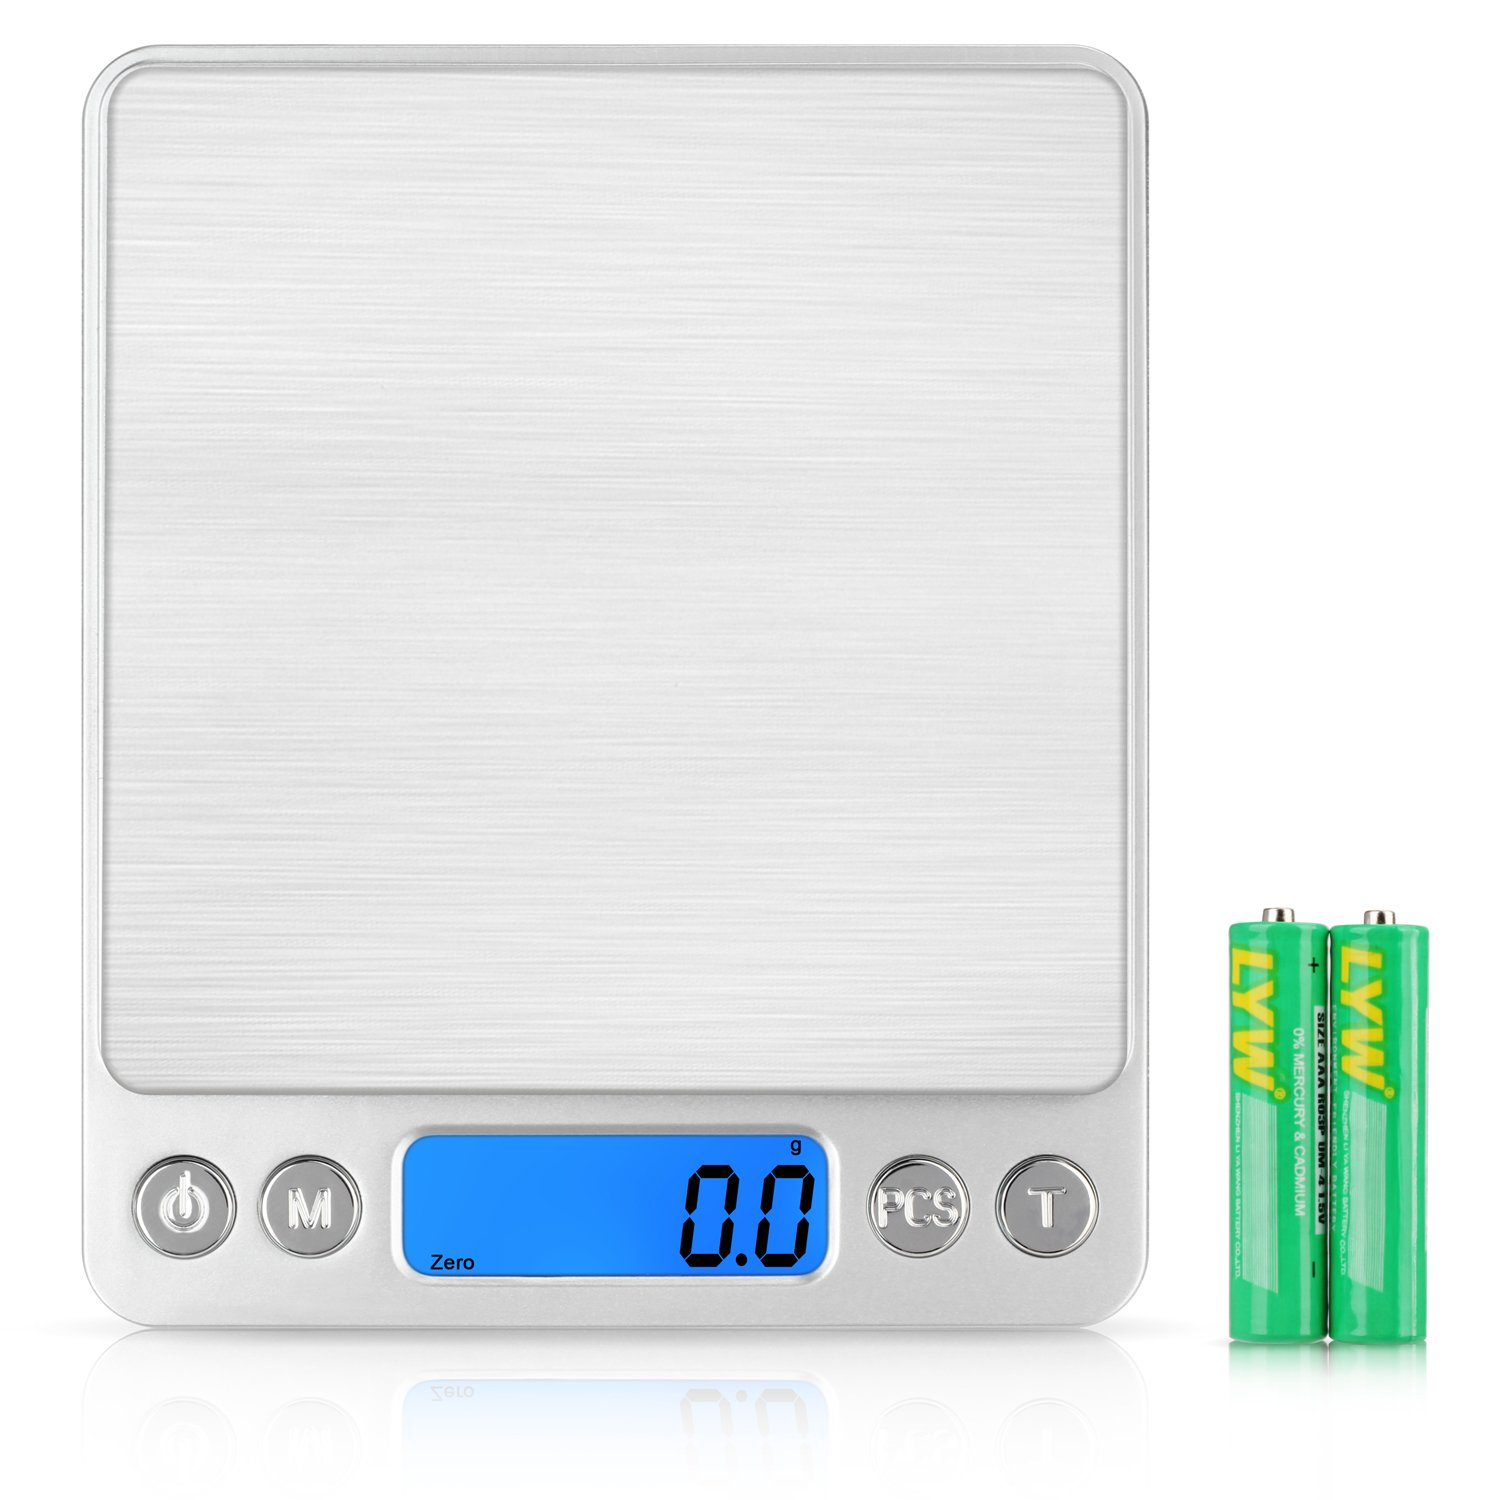 SHINE HAI Digital Kitchen Scale, Stainless Steel High-precision Pocket Food Scale, 0.1g - 3000g Multifunctional Pro Scale with Back-Lit LCD Display, Tare, PCS Features, Silvery (Batteries Included)